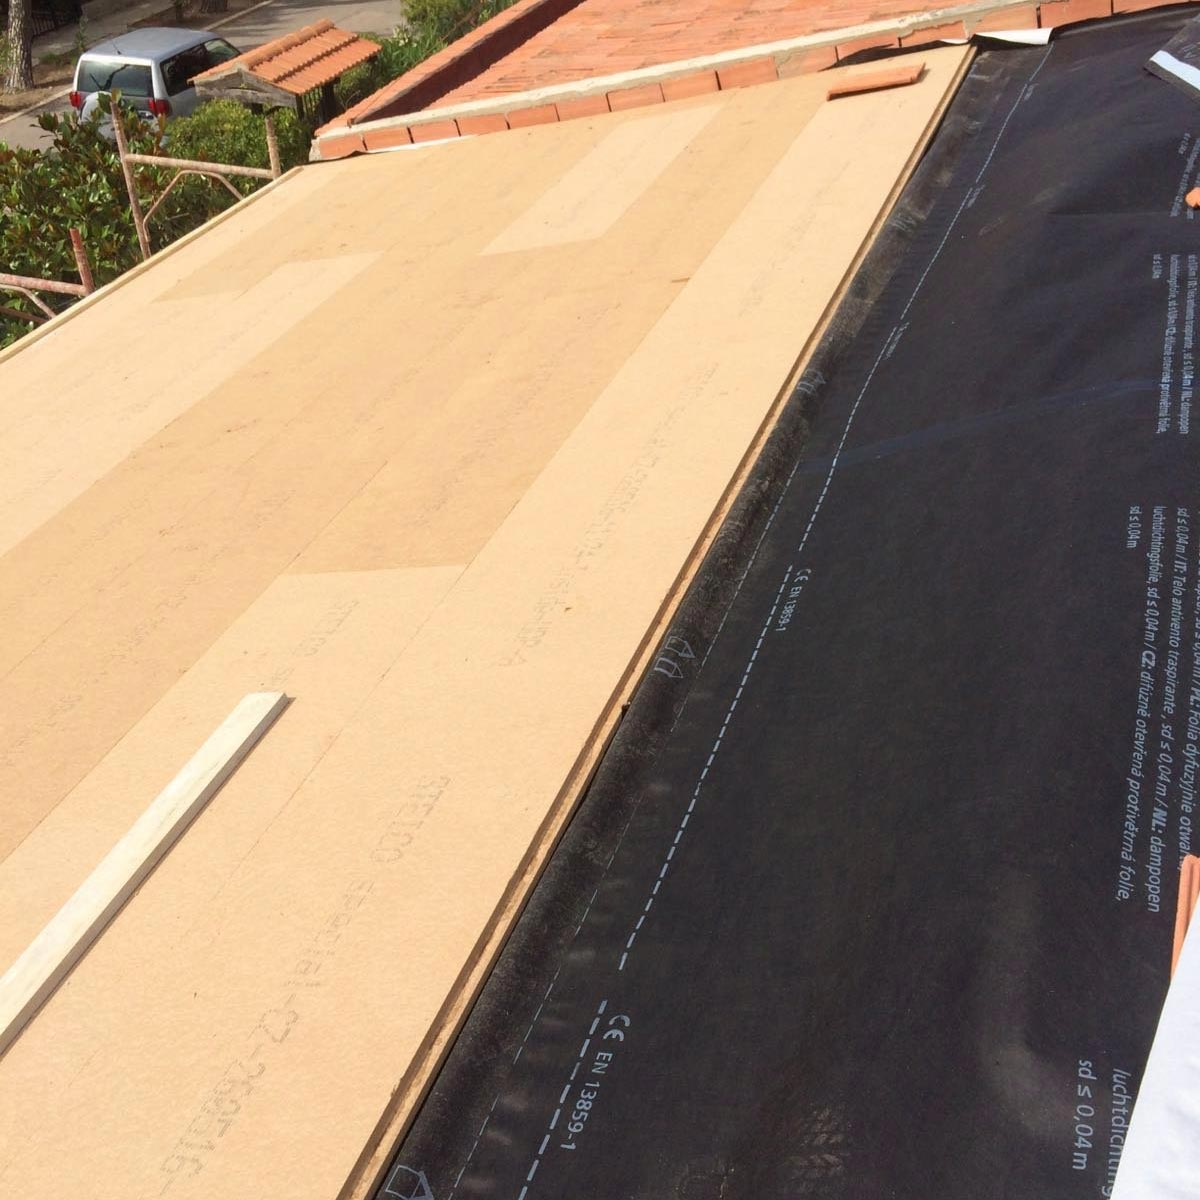 Wood fiber FiberTherm Special pitched roof insulation